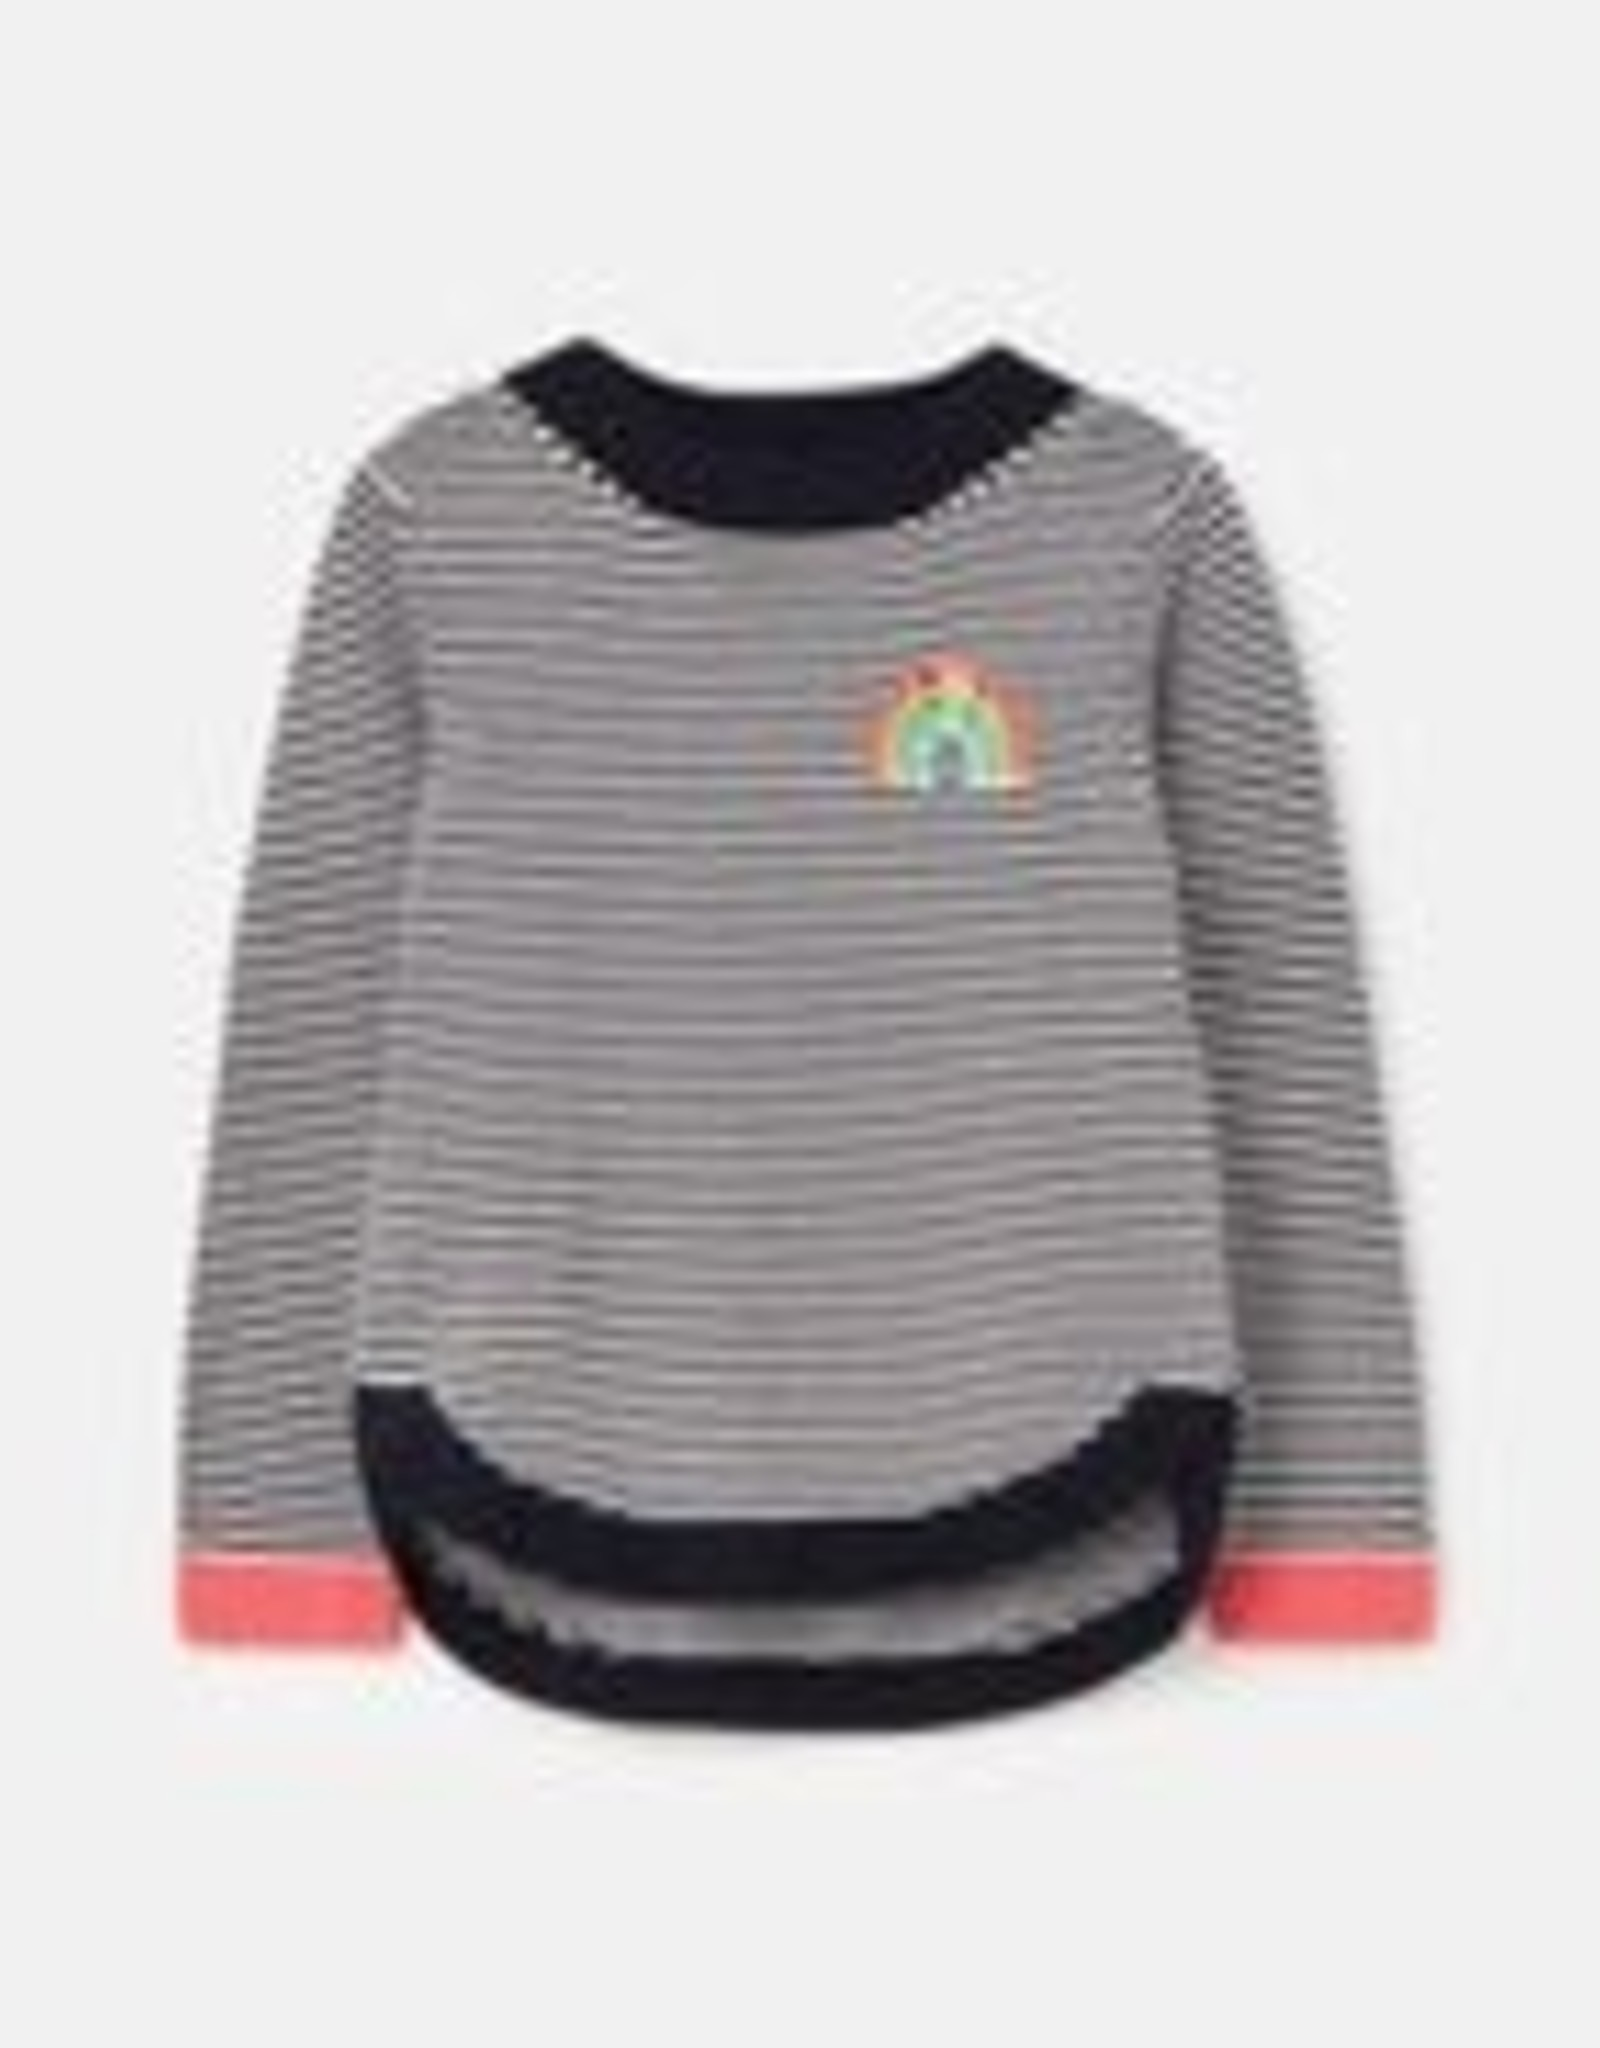 Joules FA20 Rainbow Knit Sweater